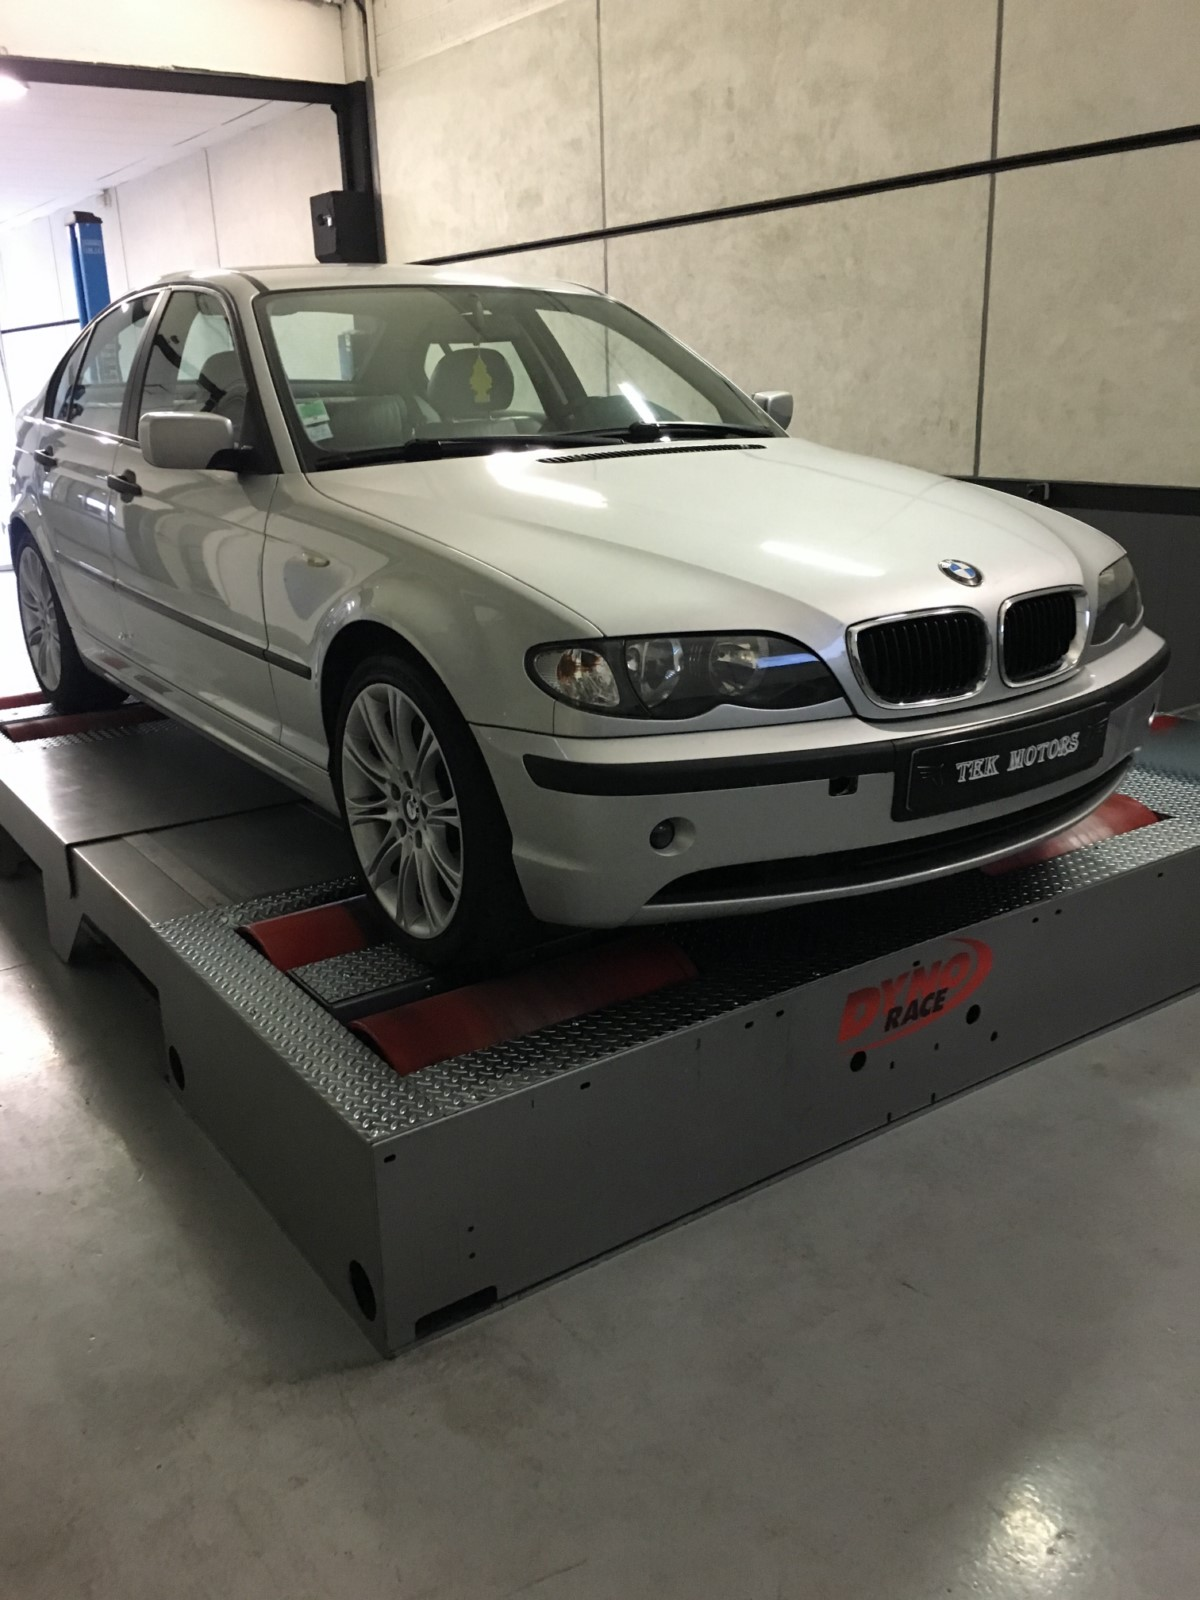 reprogrammation moteur bmw 320d e46 150 cv i paris 75 tek motors. Black Bedroom Furniture Sets. Home Design Ideas